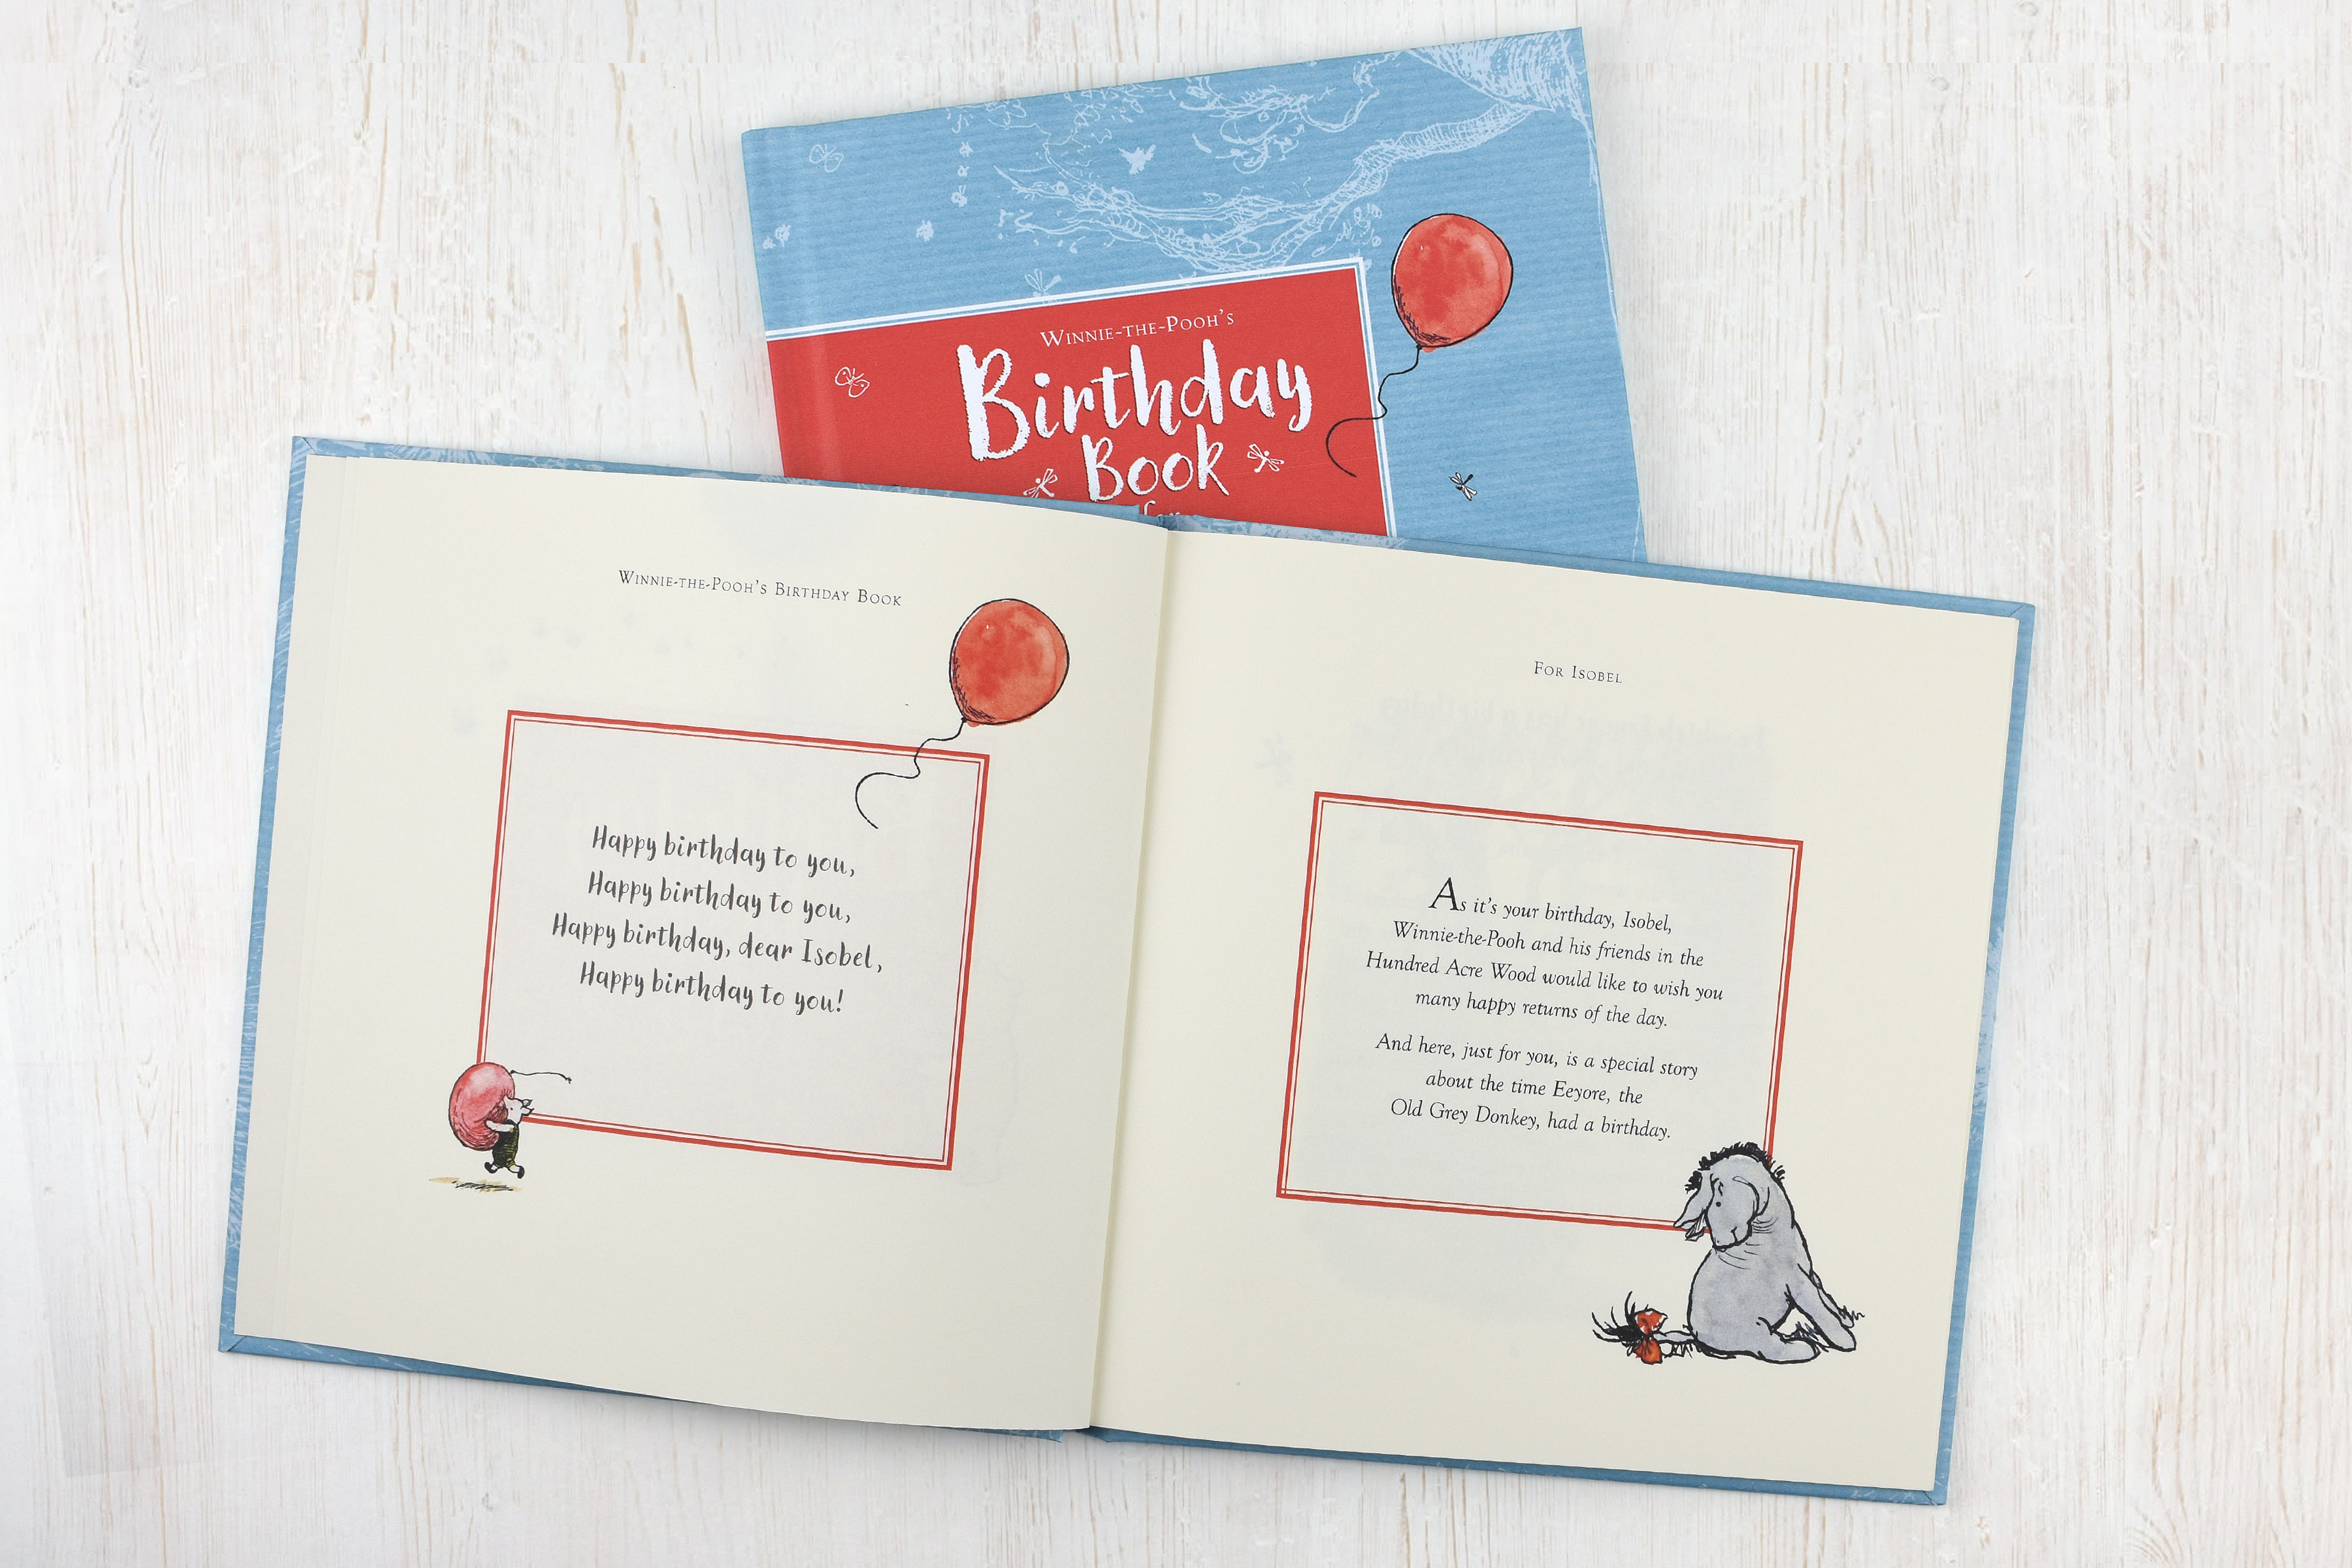 winnie the pooh s birthday book for you personalised books from